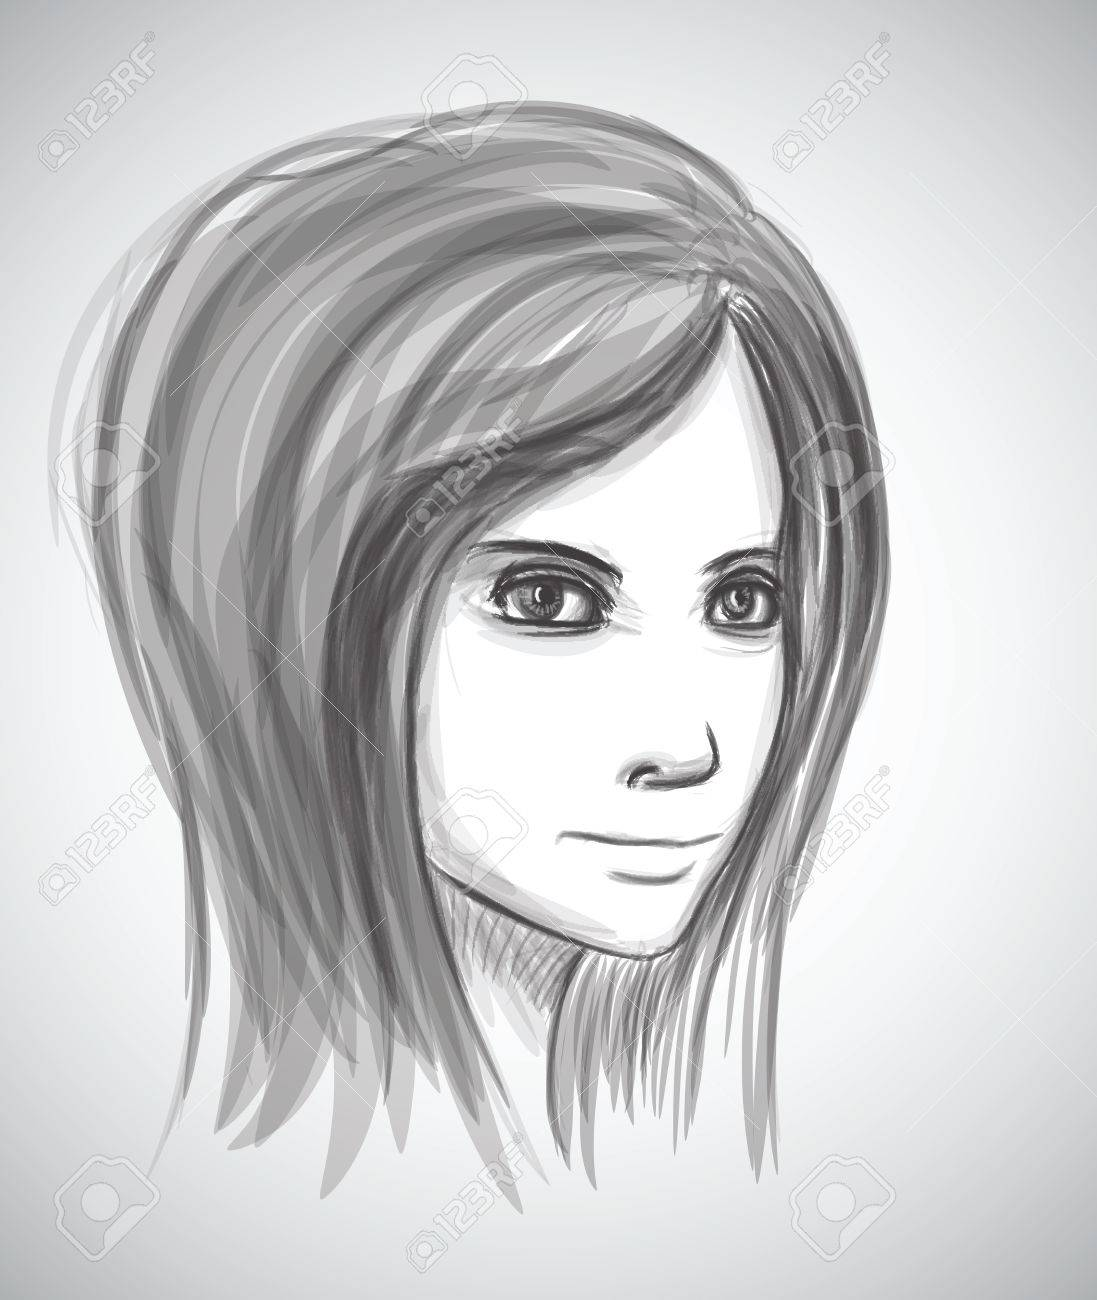 Beauty girl face pencil sketch portrait imitation in vector stock vector 24931897